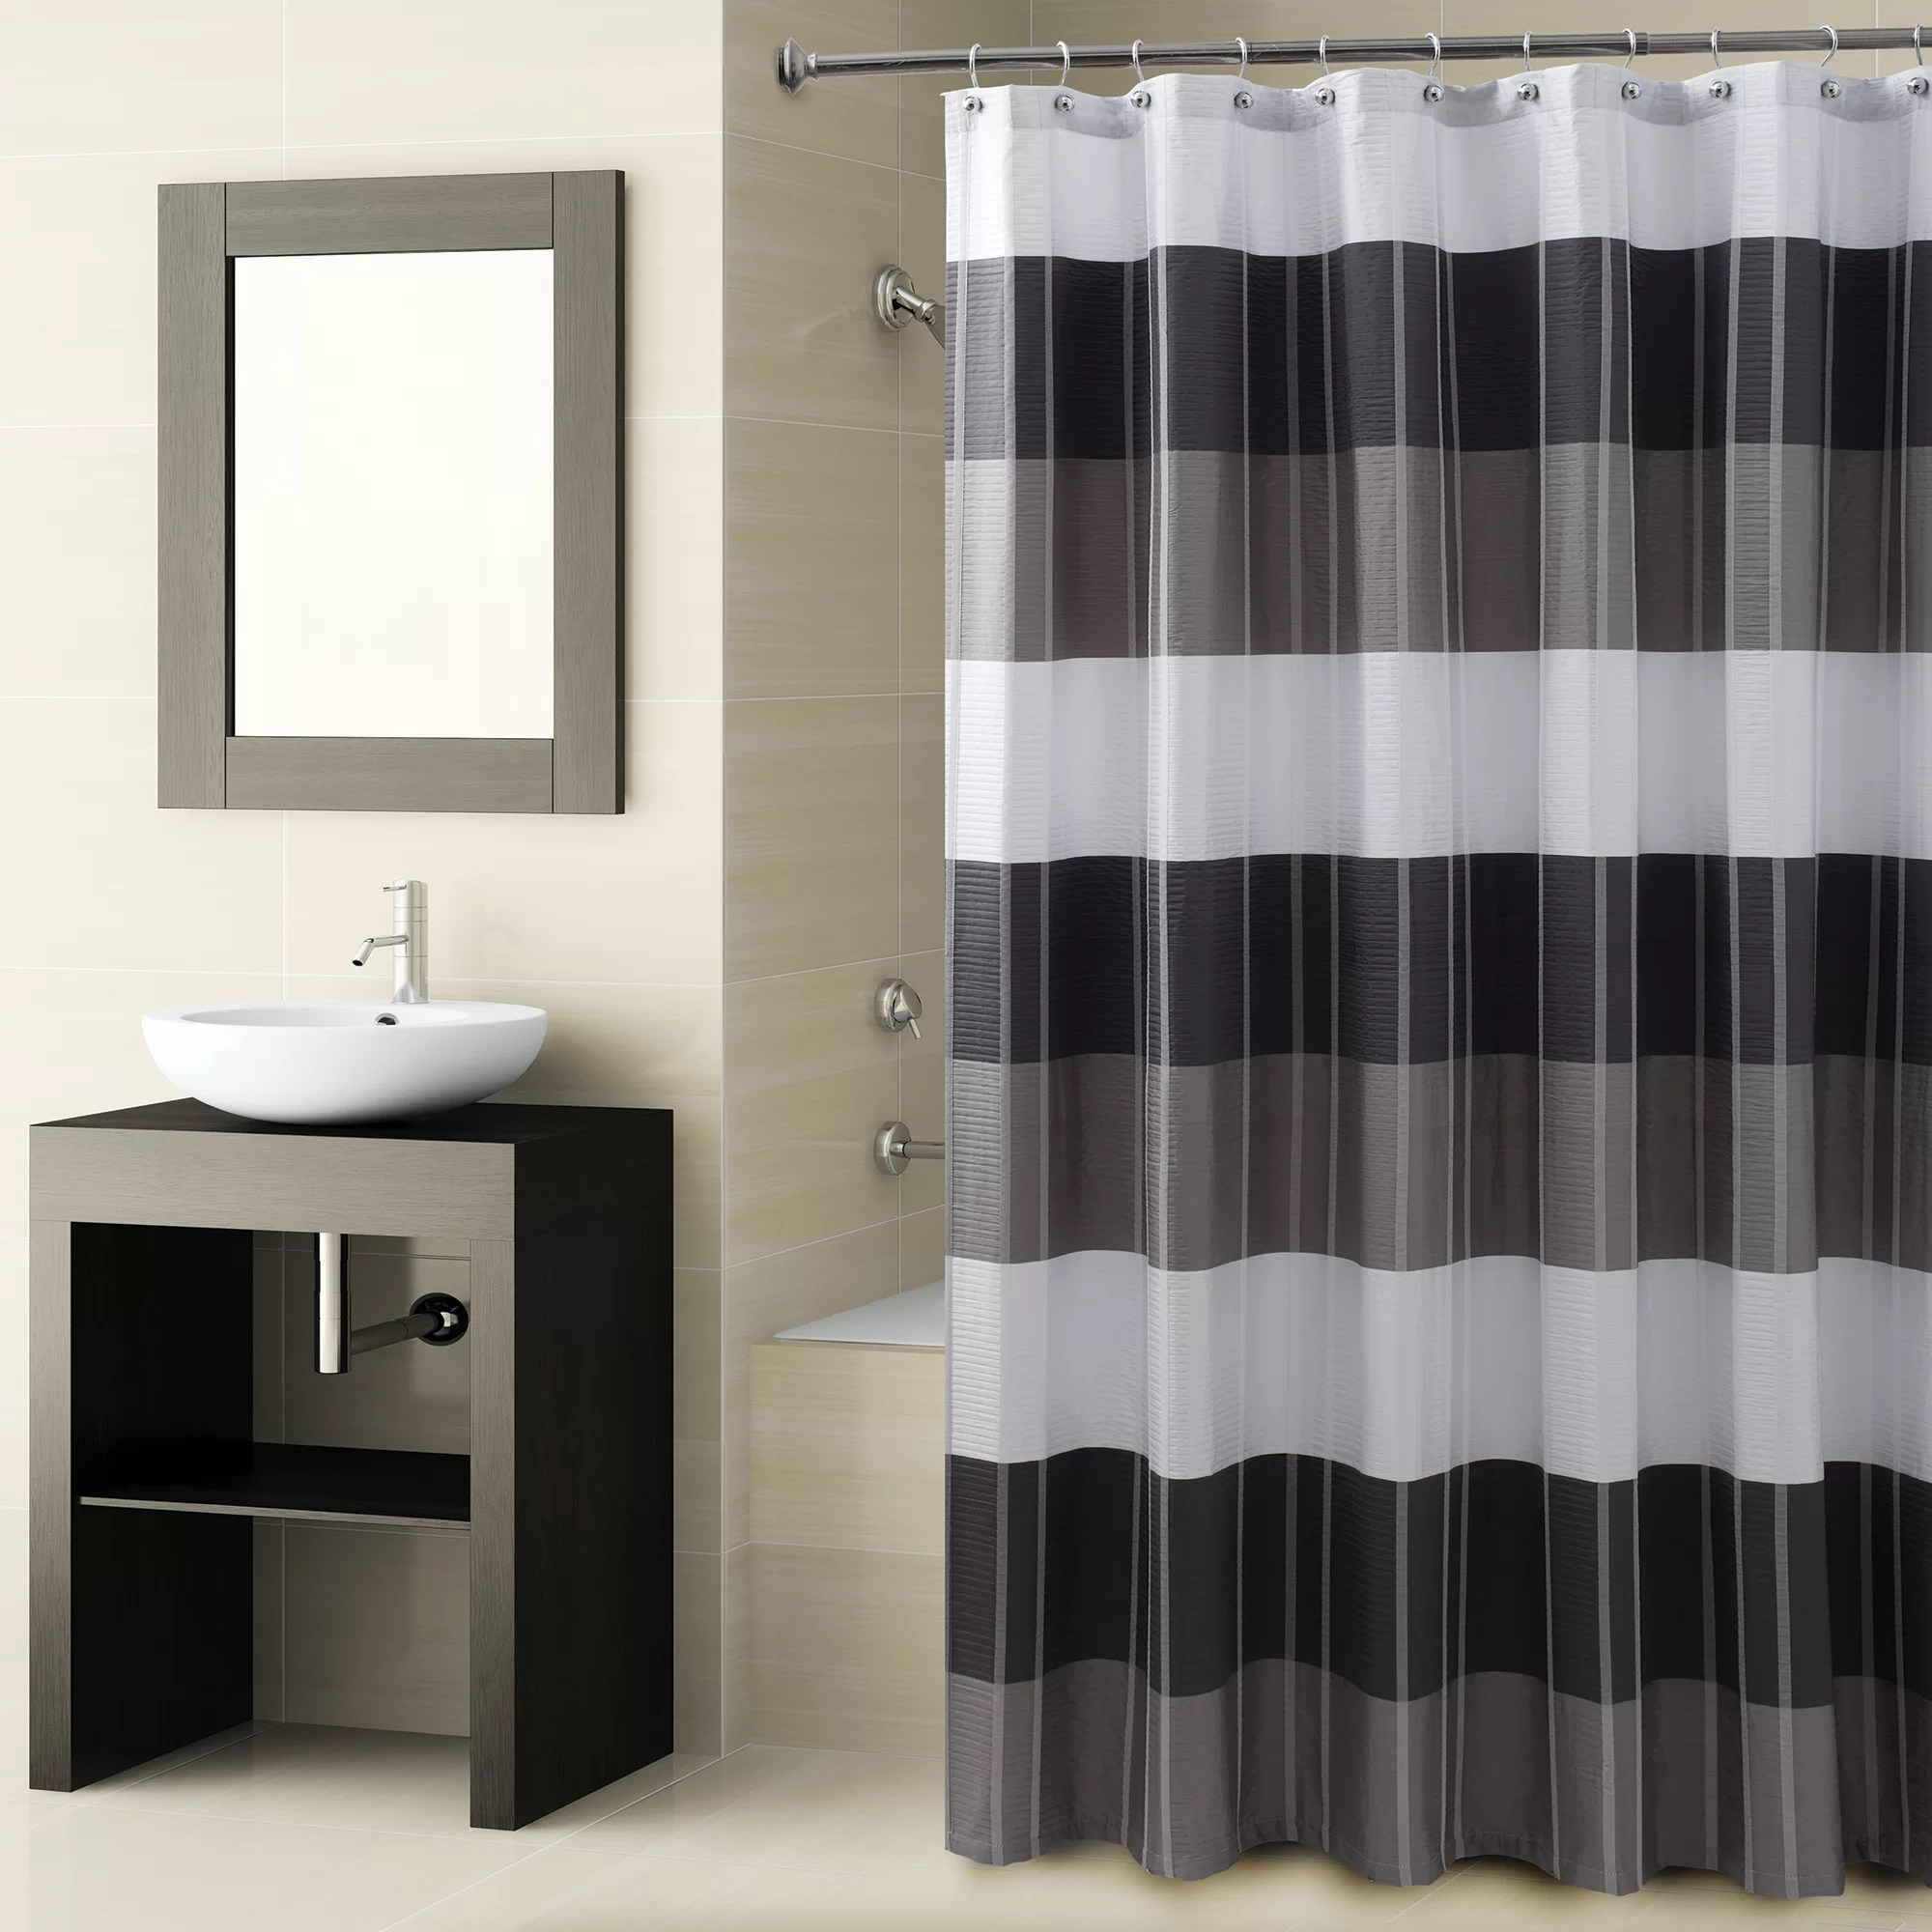 How To Make Shower Curtain Fairfax Single Shower Curtain